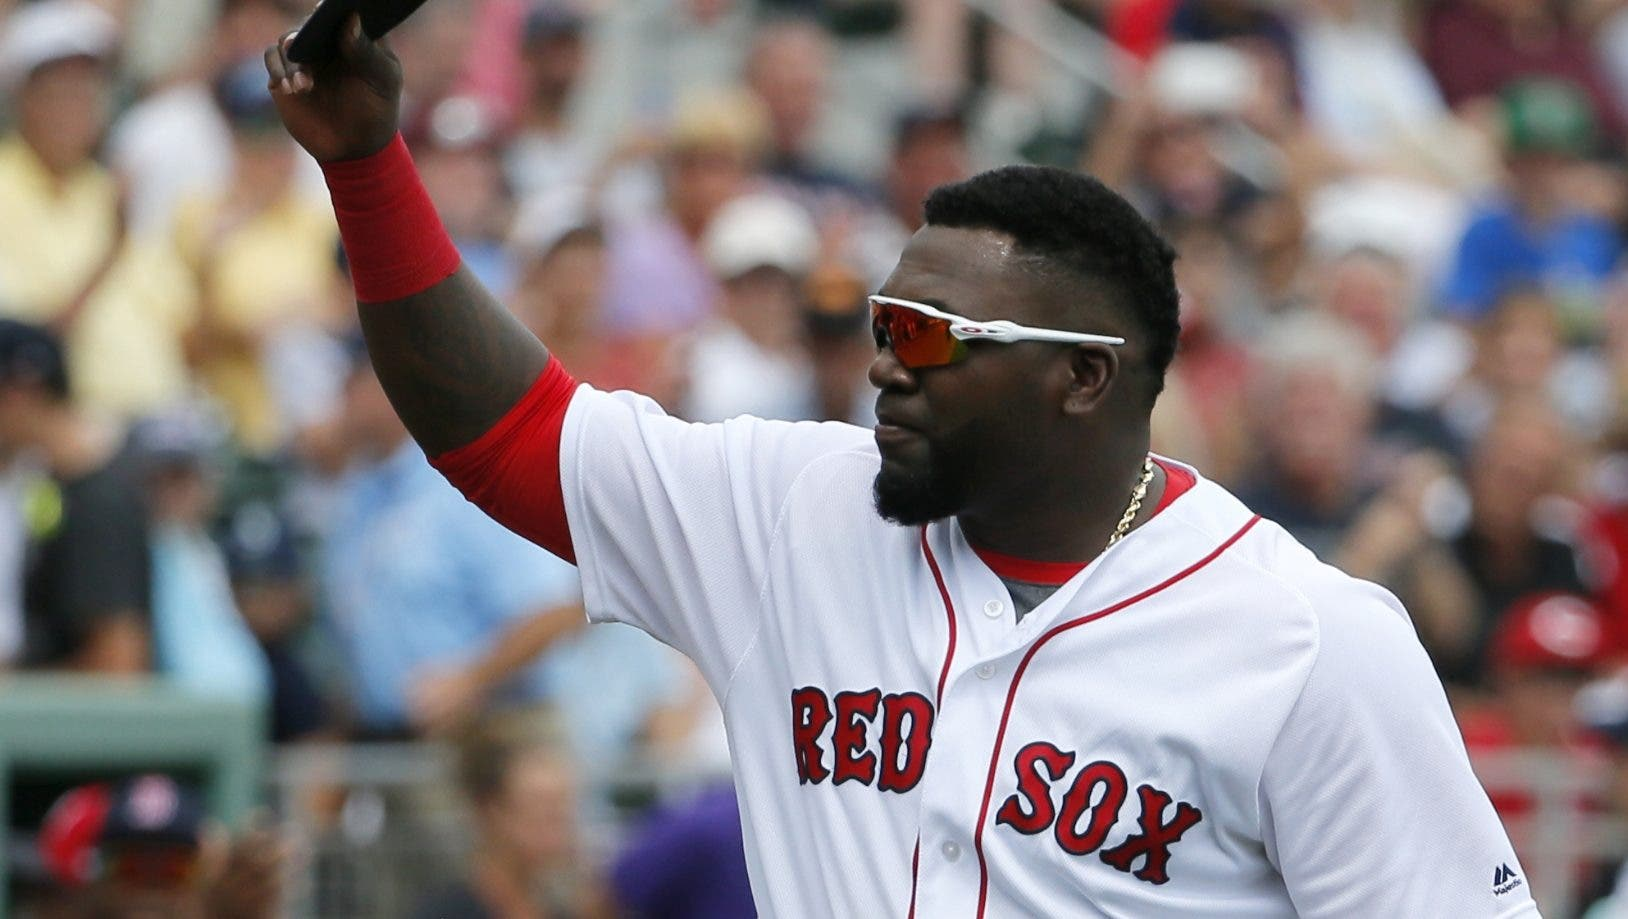 Boston Red Sox's David Ortiz acknowledges cheers from fans after being introduced during a ceremony honoring him before a spring training baseball game against the Baltimore Orioles, Monday, March 28, 2016, in Fort Myers, Fla. Ortiz played his last spring training home game at jetBlue Park Monday. (AP Photo/Tony Gutierrez)